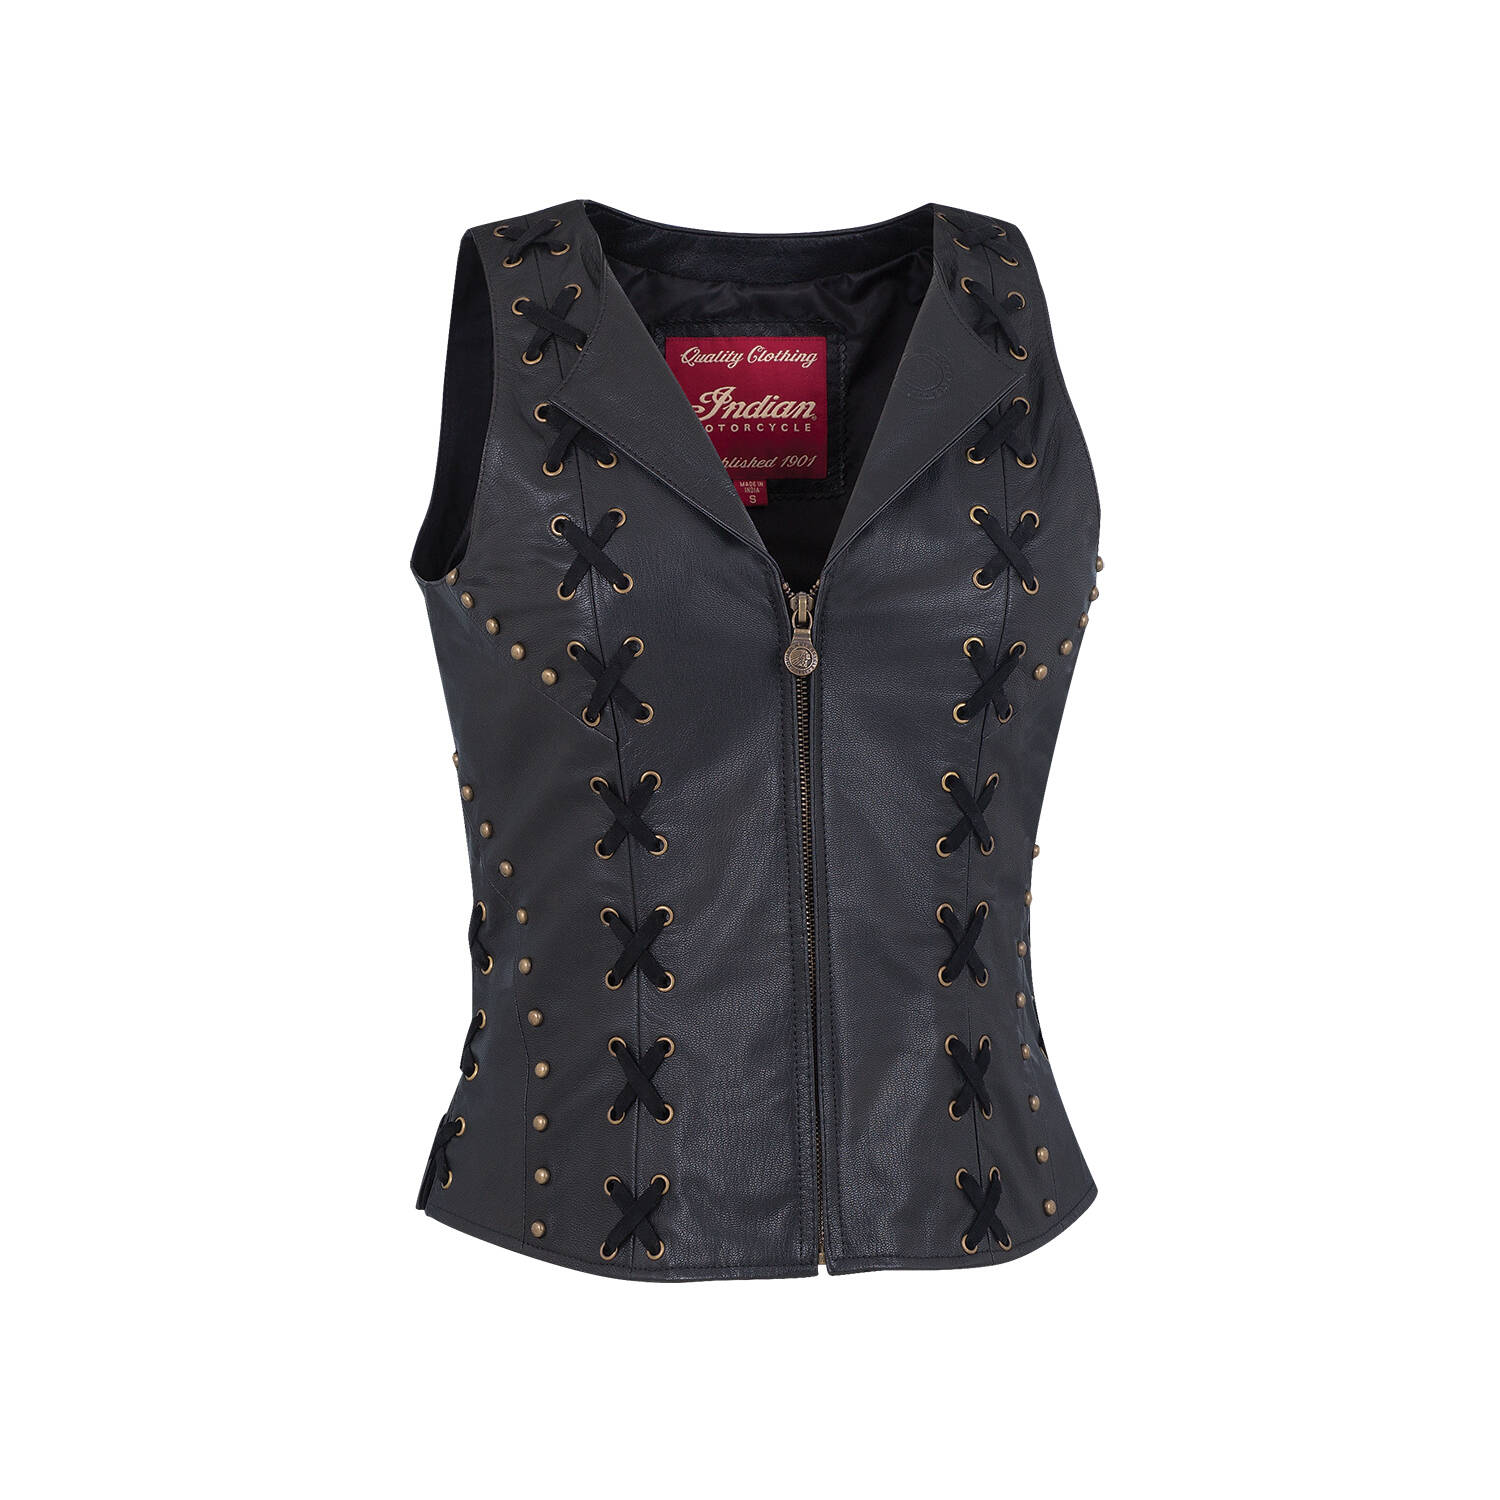 Women's Casual Zip-Up Leather Vest with Laced Detail, Black